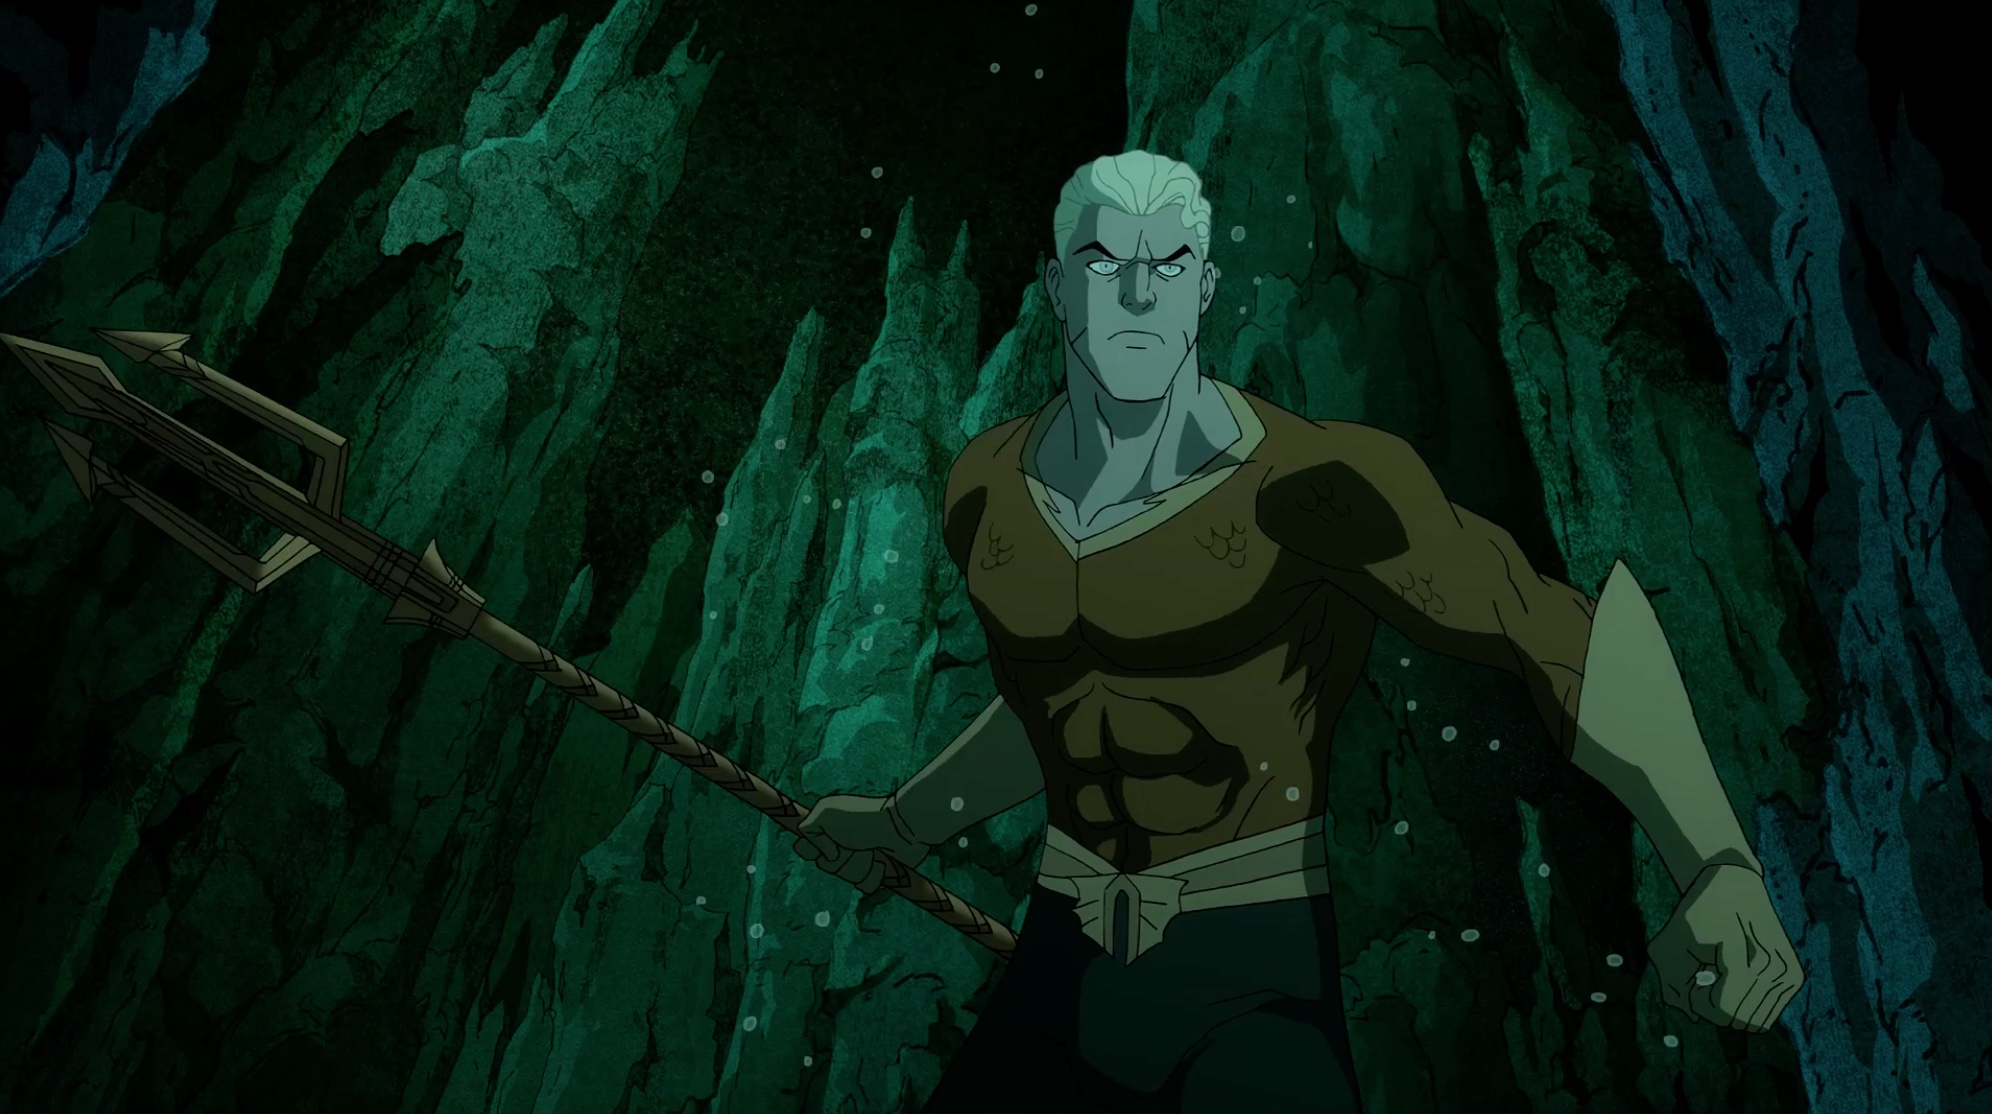 Image d'Aquaman dans le film d'animation Justice Society : World War II